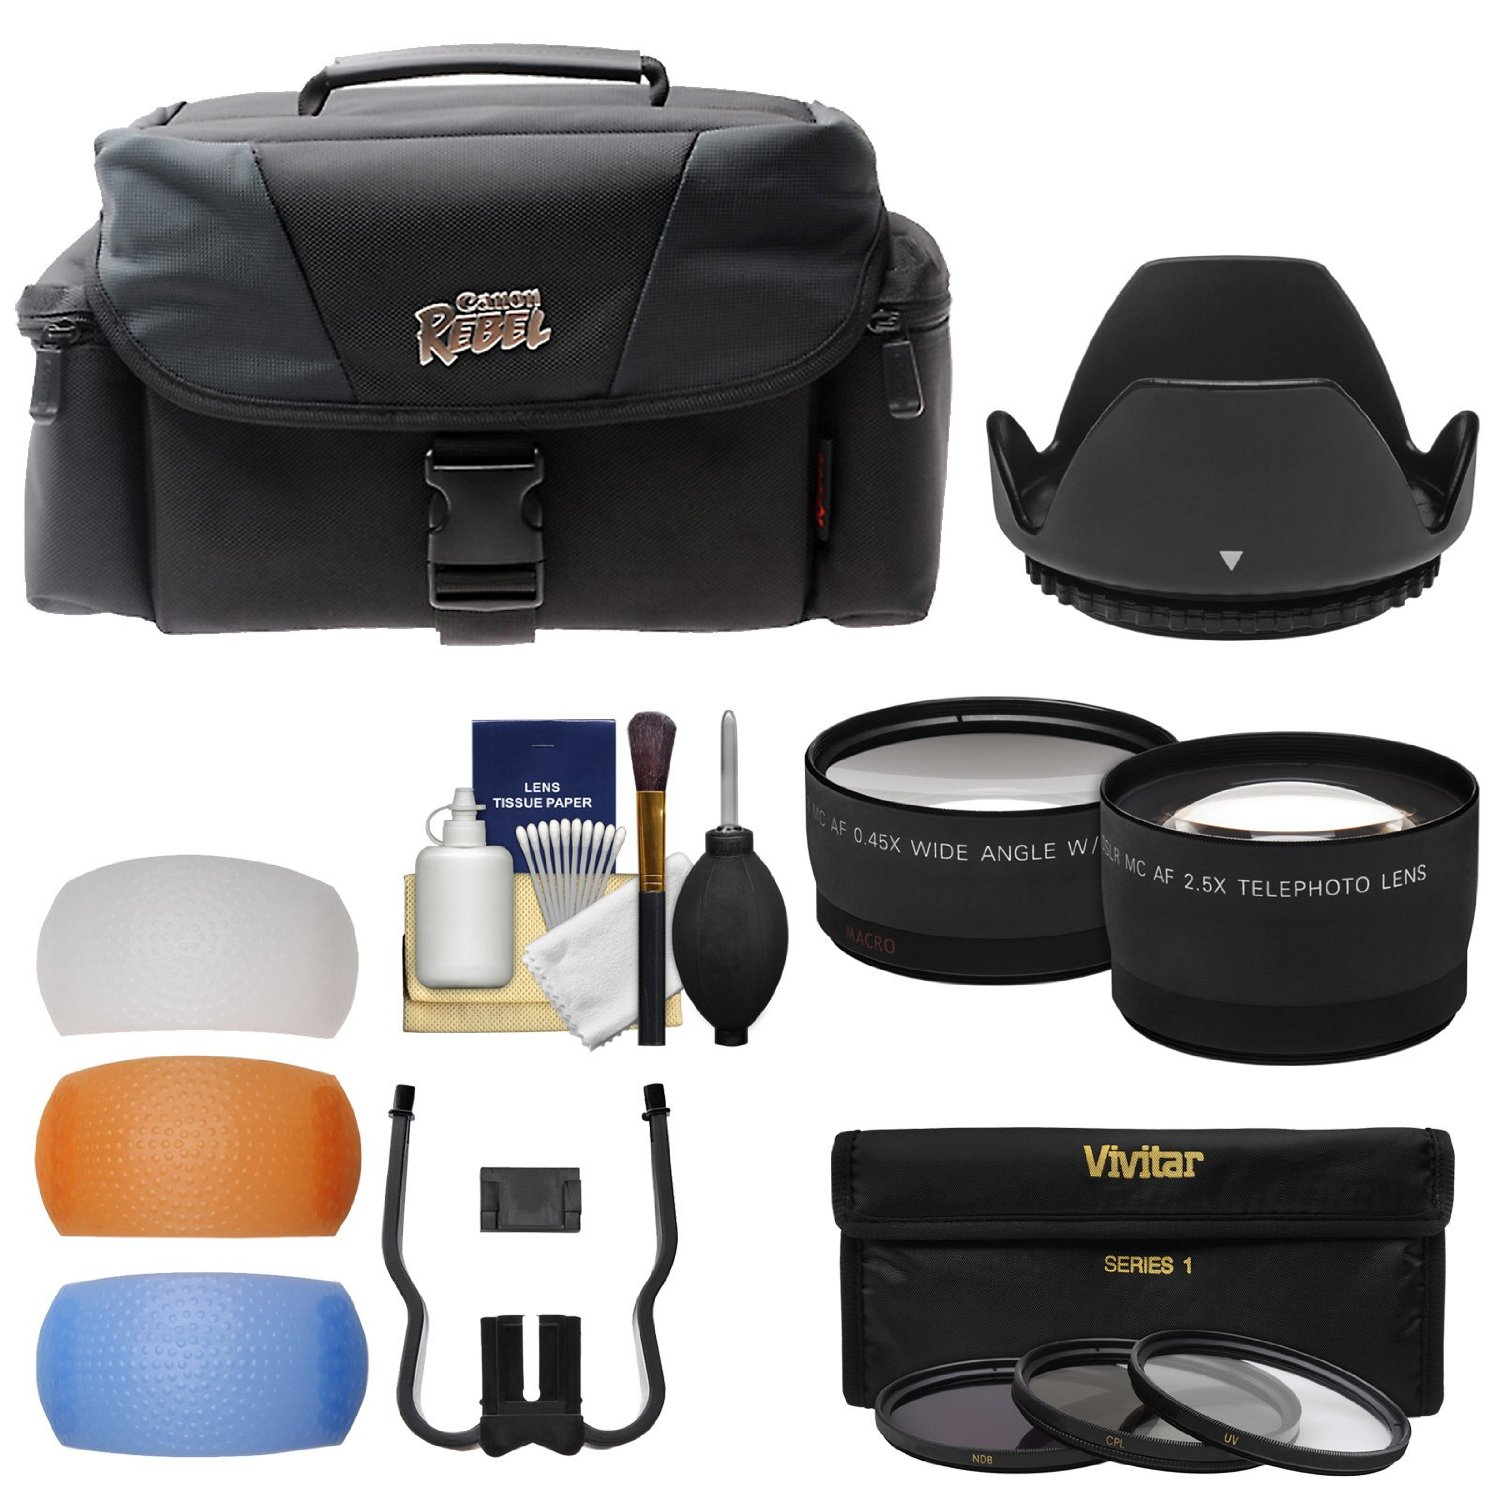 Canon Rebel Digital SLR Camera Case with Tele/Wide Lenses + 3 Filters + Flash Diffusers Kit for EOS Rebel T3, T3i, T5, T5i, T6i, T6s